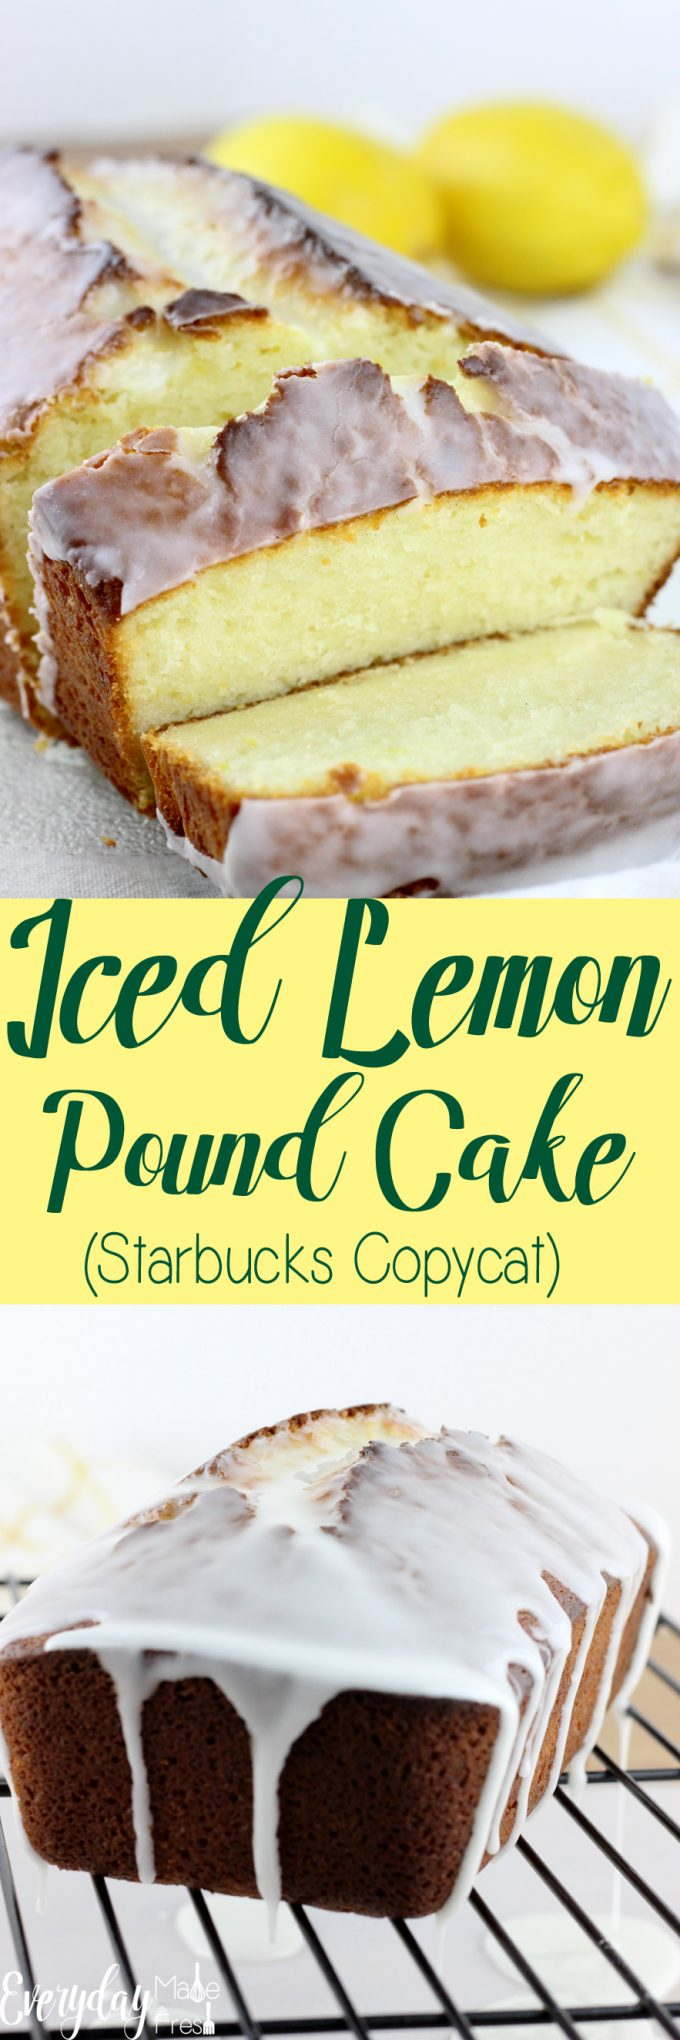 This Iced Lemon Pound Cake (Starbucks Copycat) is so easy to make, and far better than what you get from the coffee shop!| EverydayMadeFresh.com